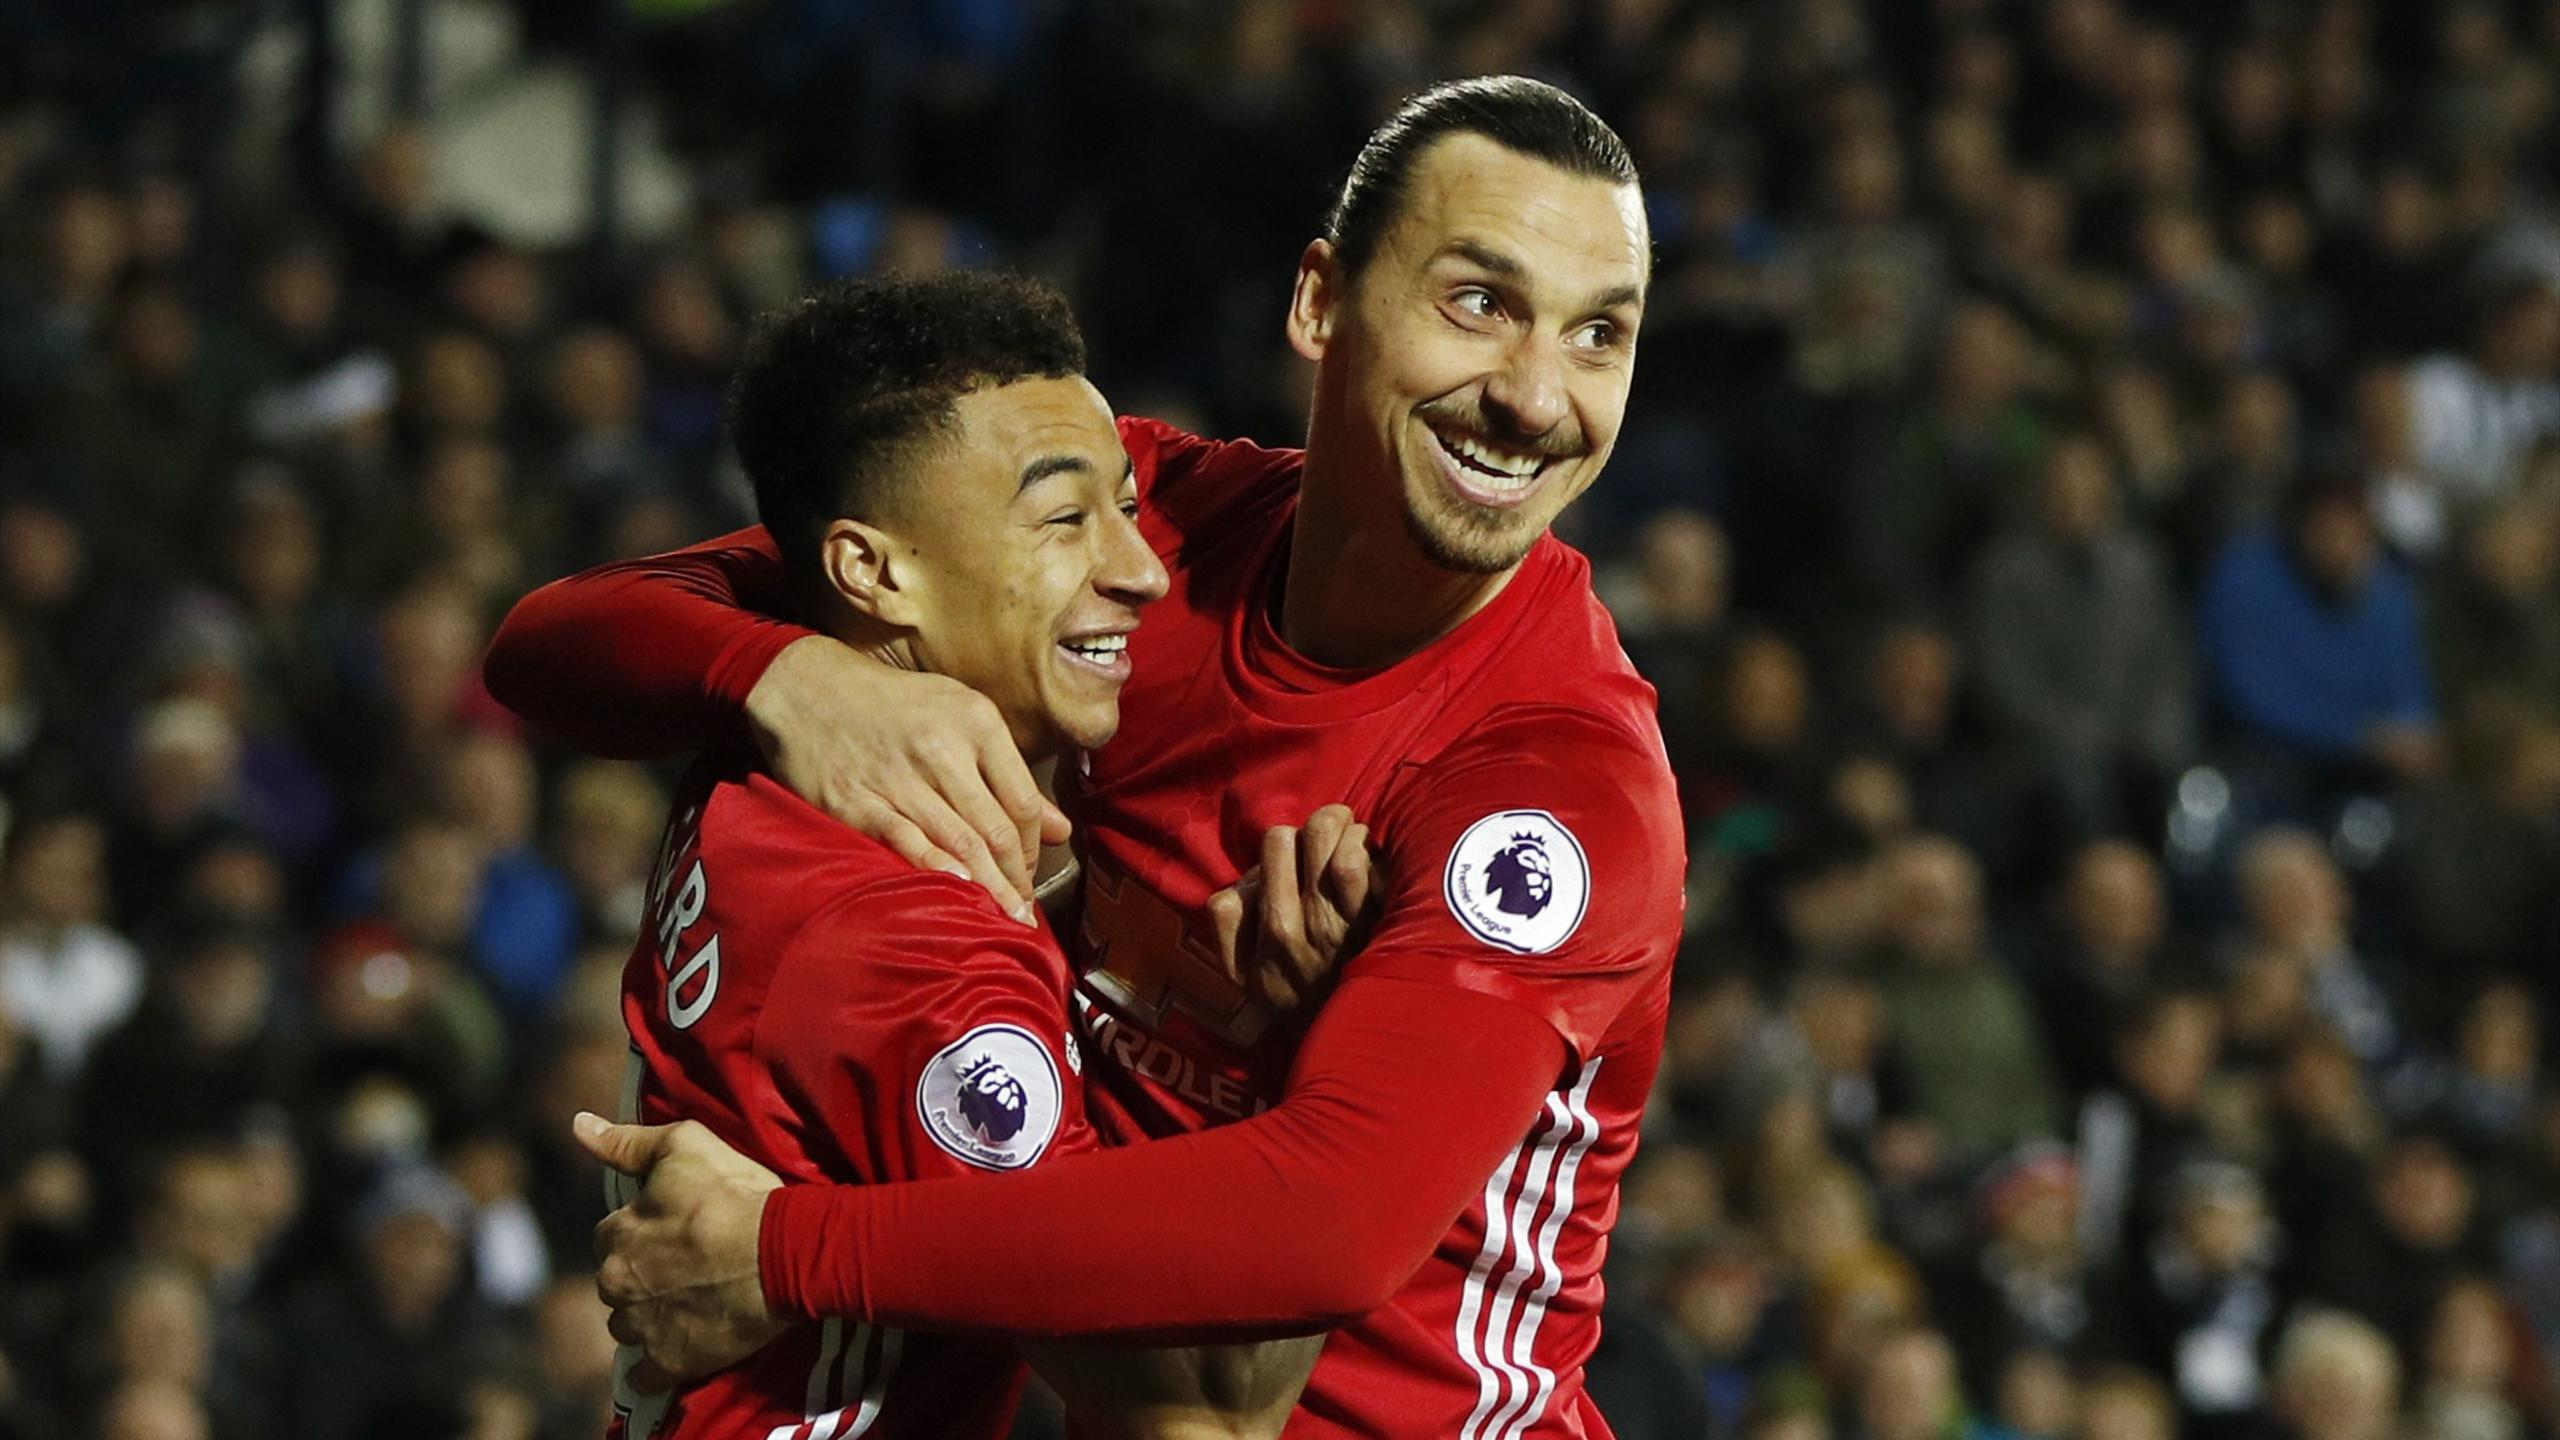 Manchester United's Zlatan Ibrahimovic celebrates scoring their first goal with Jesse Lingard